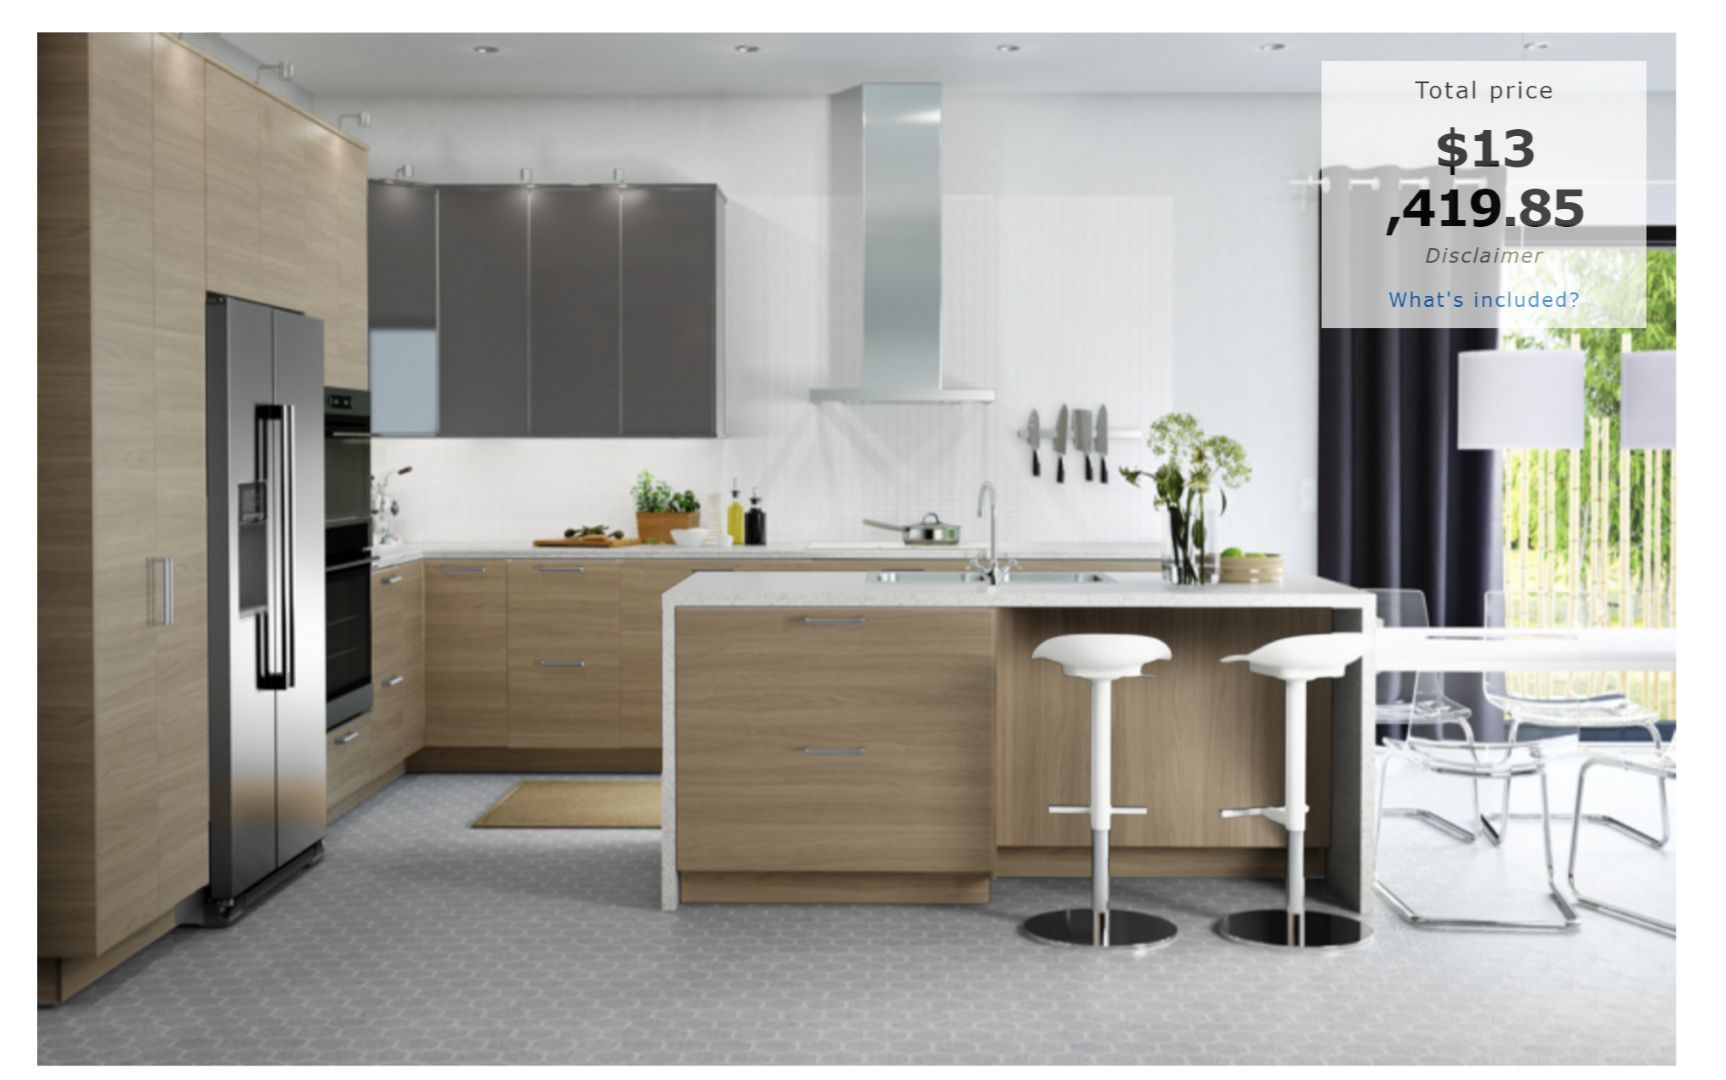 15 Advanced Cost Of Kitchen Cabinets Stock Advanced Cabinets Cost Kitchen Stock In 2020 Kitchen Cabinets Prices Kitchen Renovation Cost Kitchen Cost